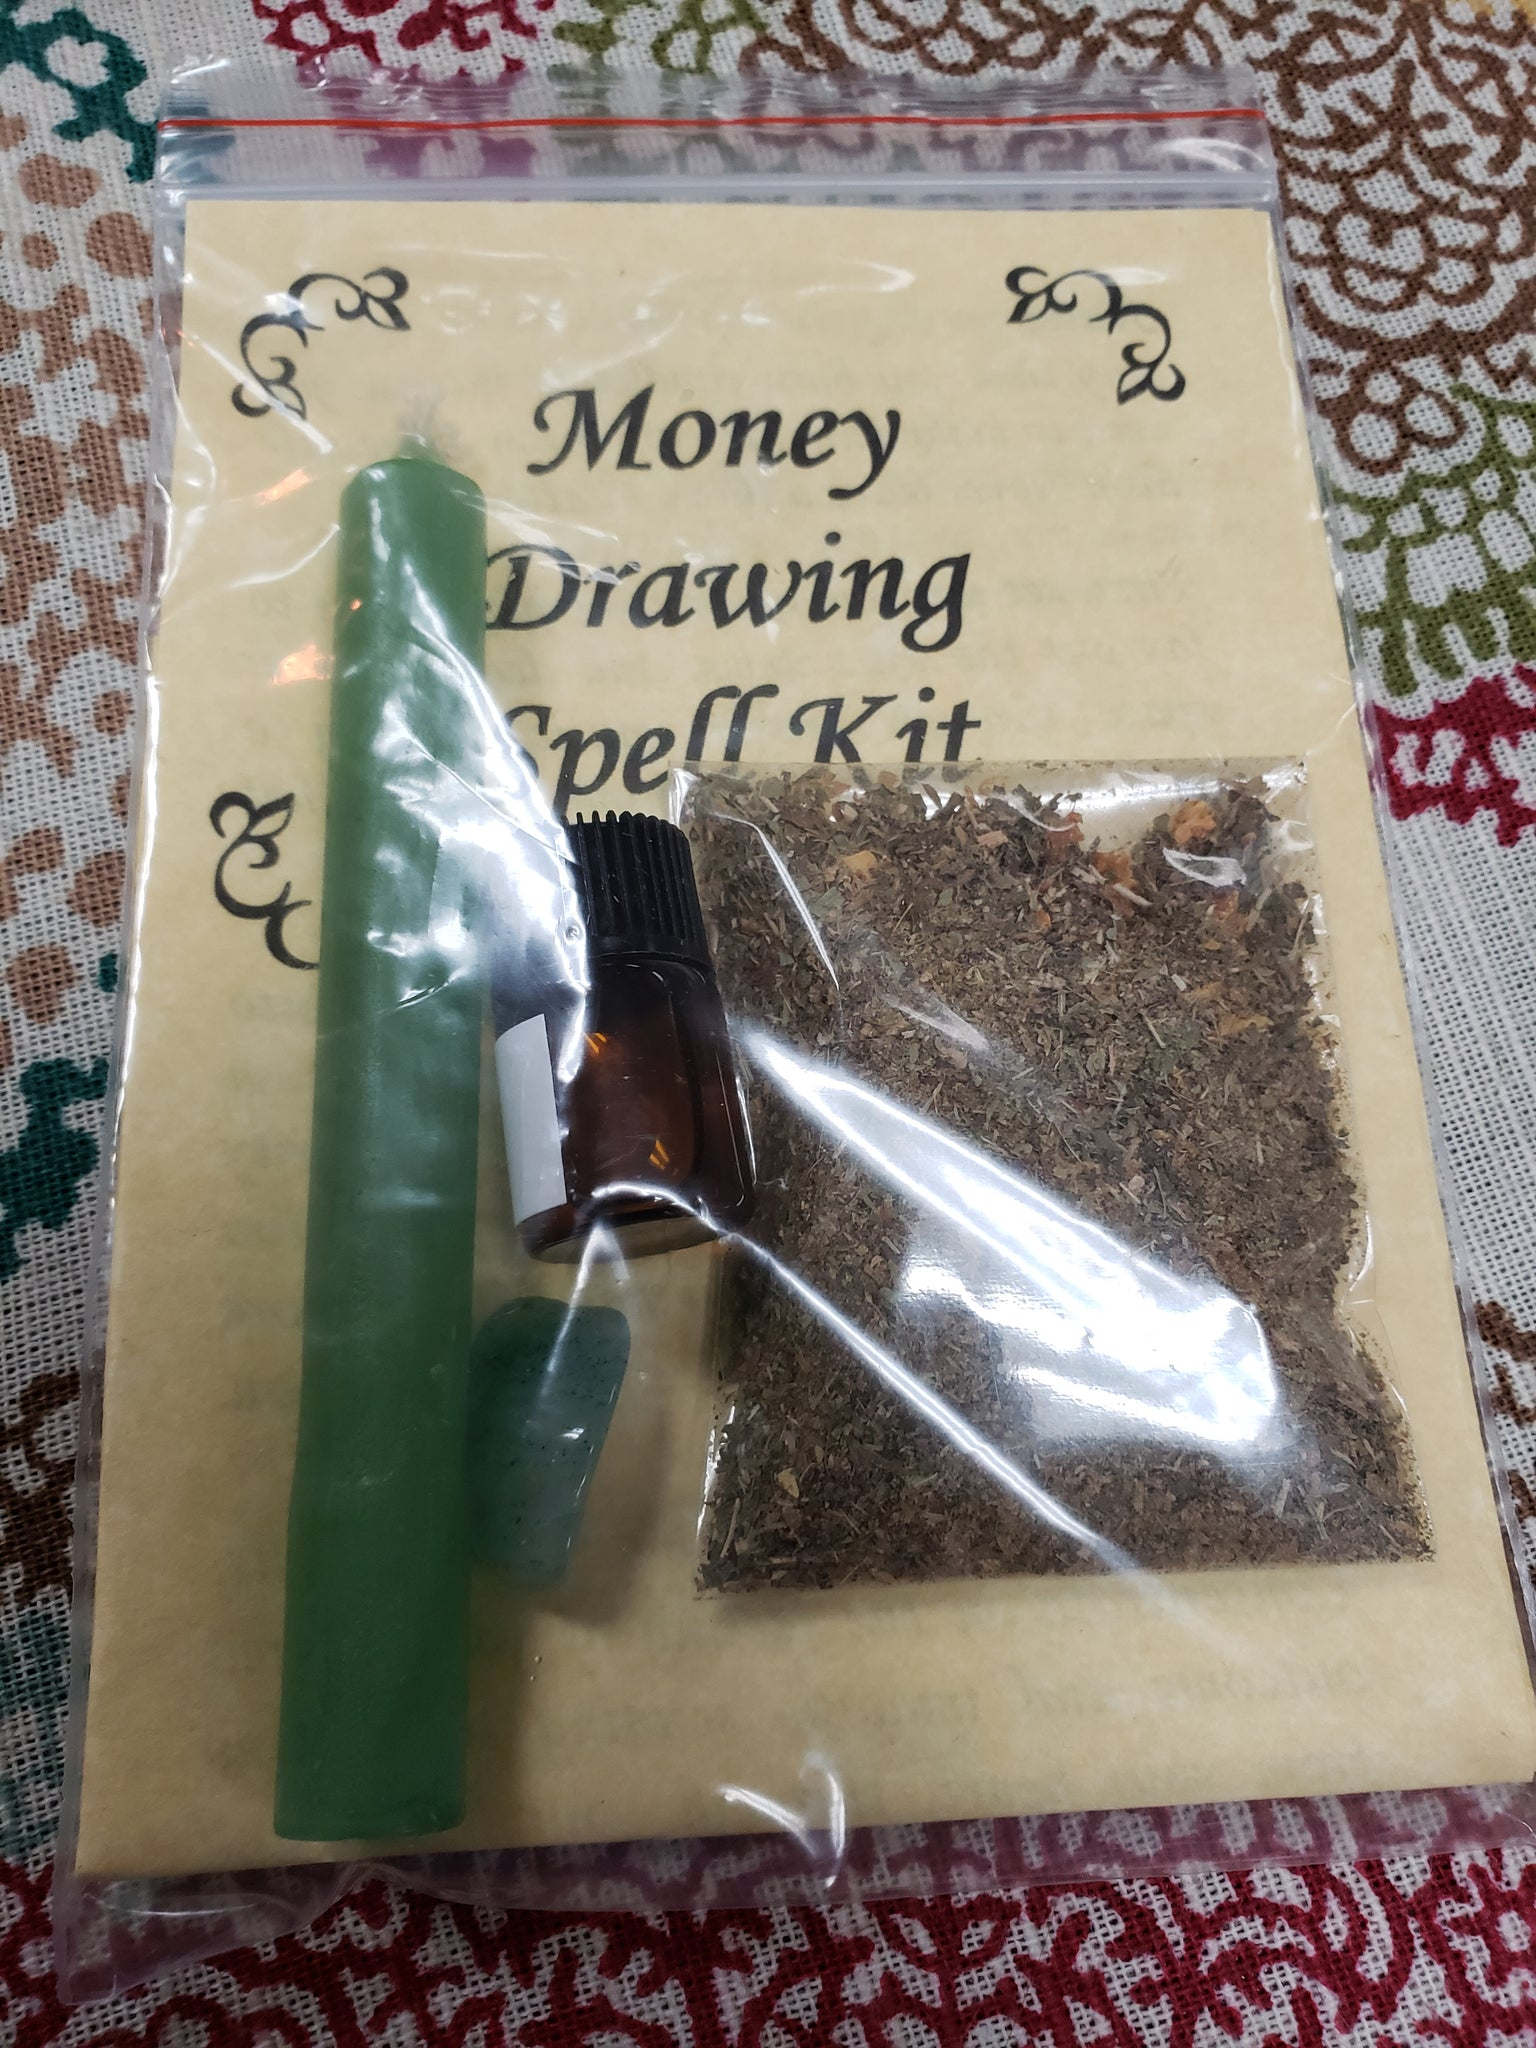 Money Drawing Spell Kit - Tree Of Life Shoppe